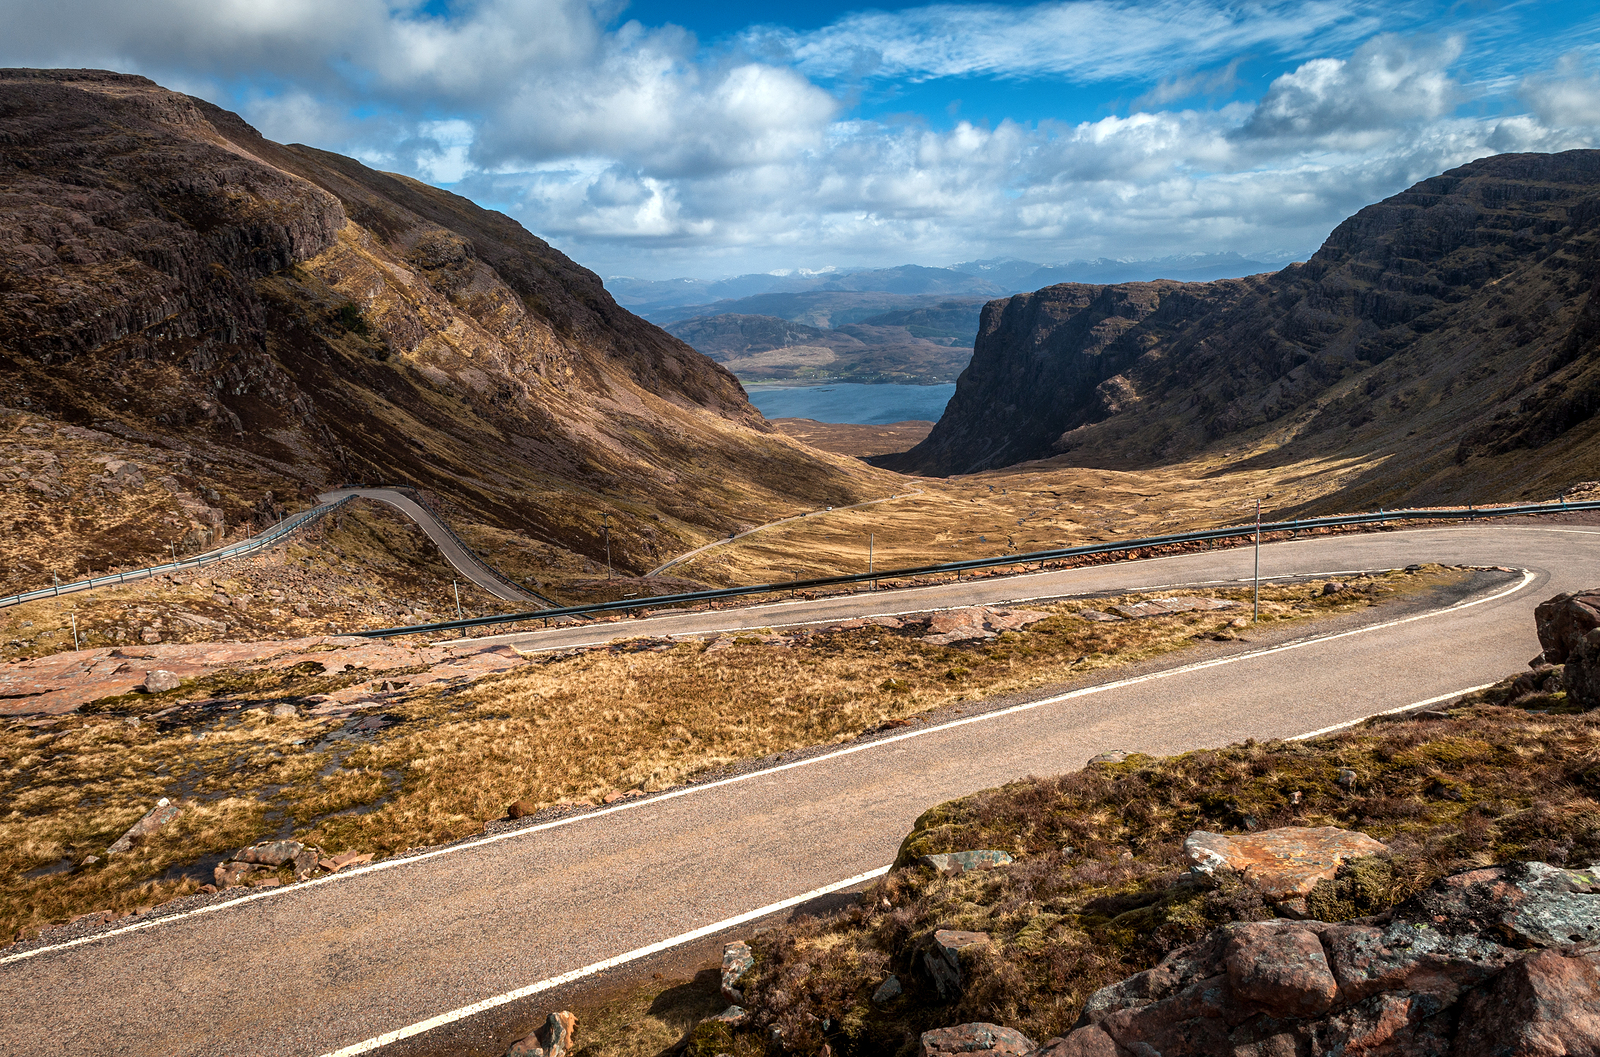 A trip to Skye has to include the iconic Applecross Peninsula with fantastic views of the isle